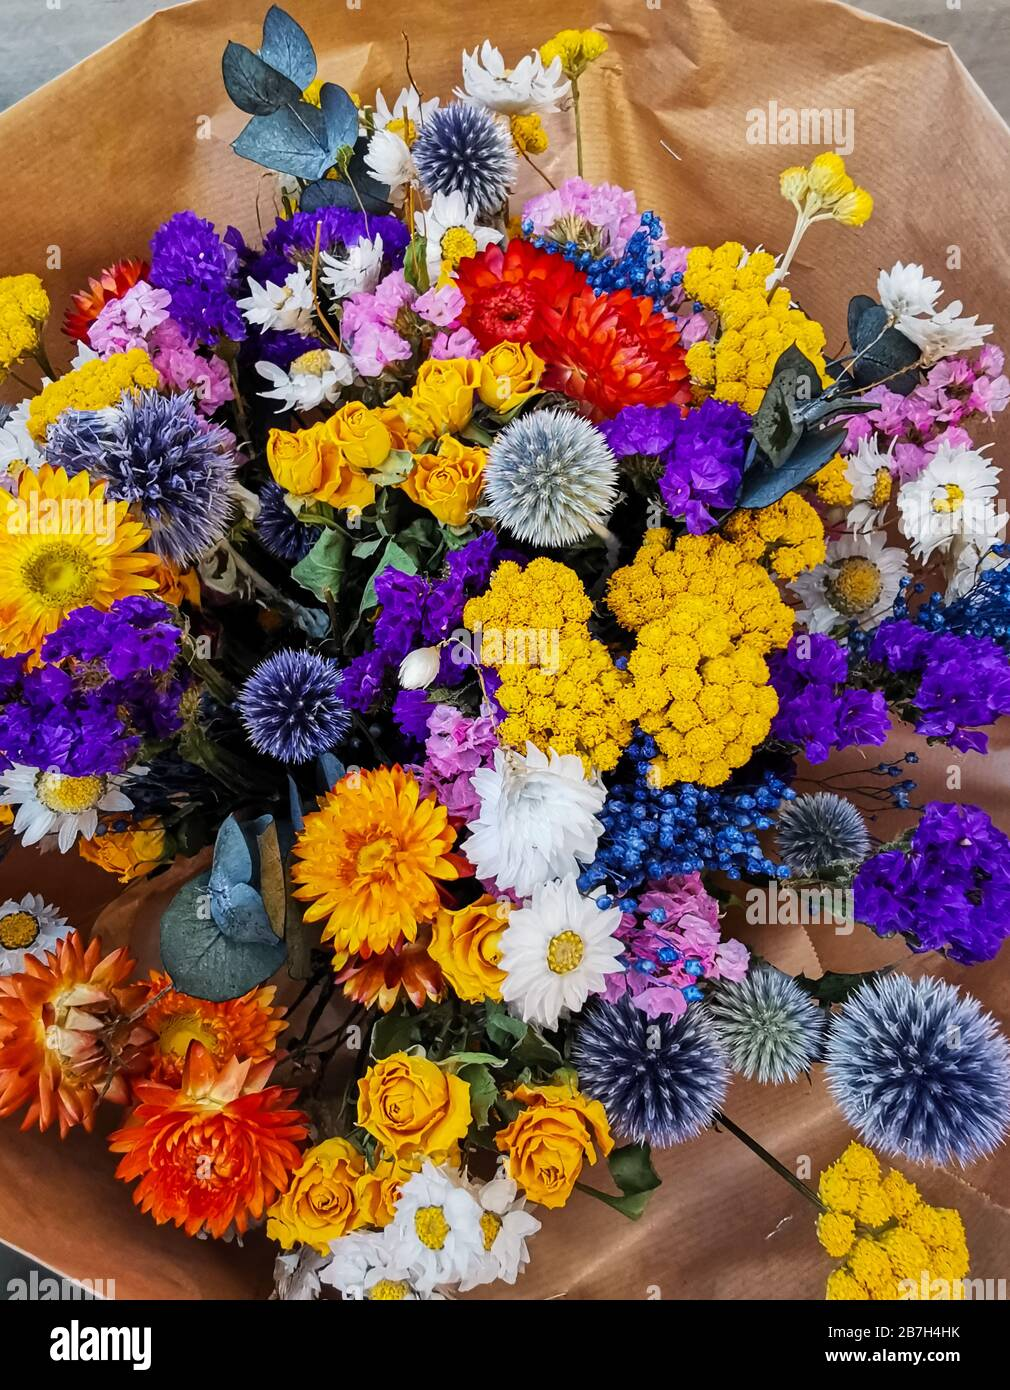 Vibrant Dried Flower Arrangement In Purple And Yellow Tones Stock Photo Alamy